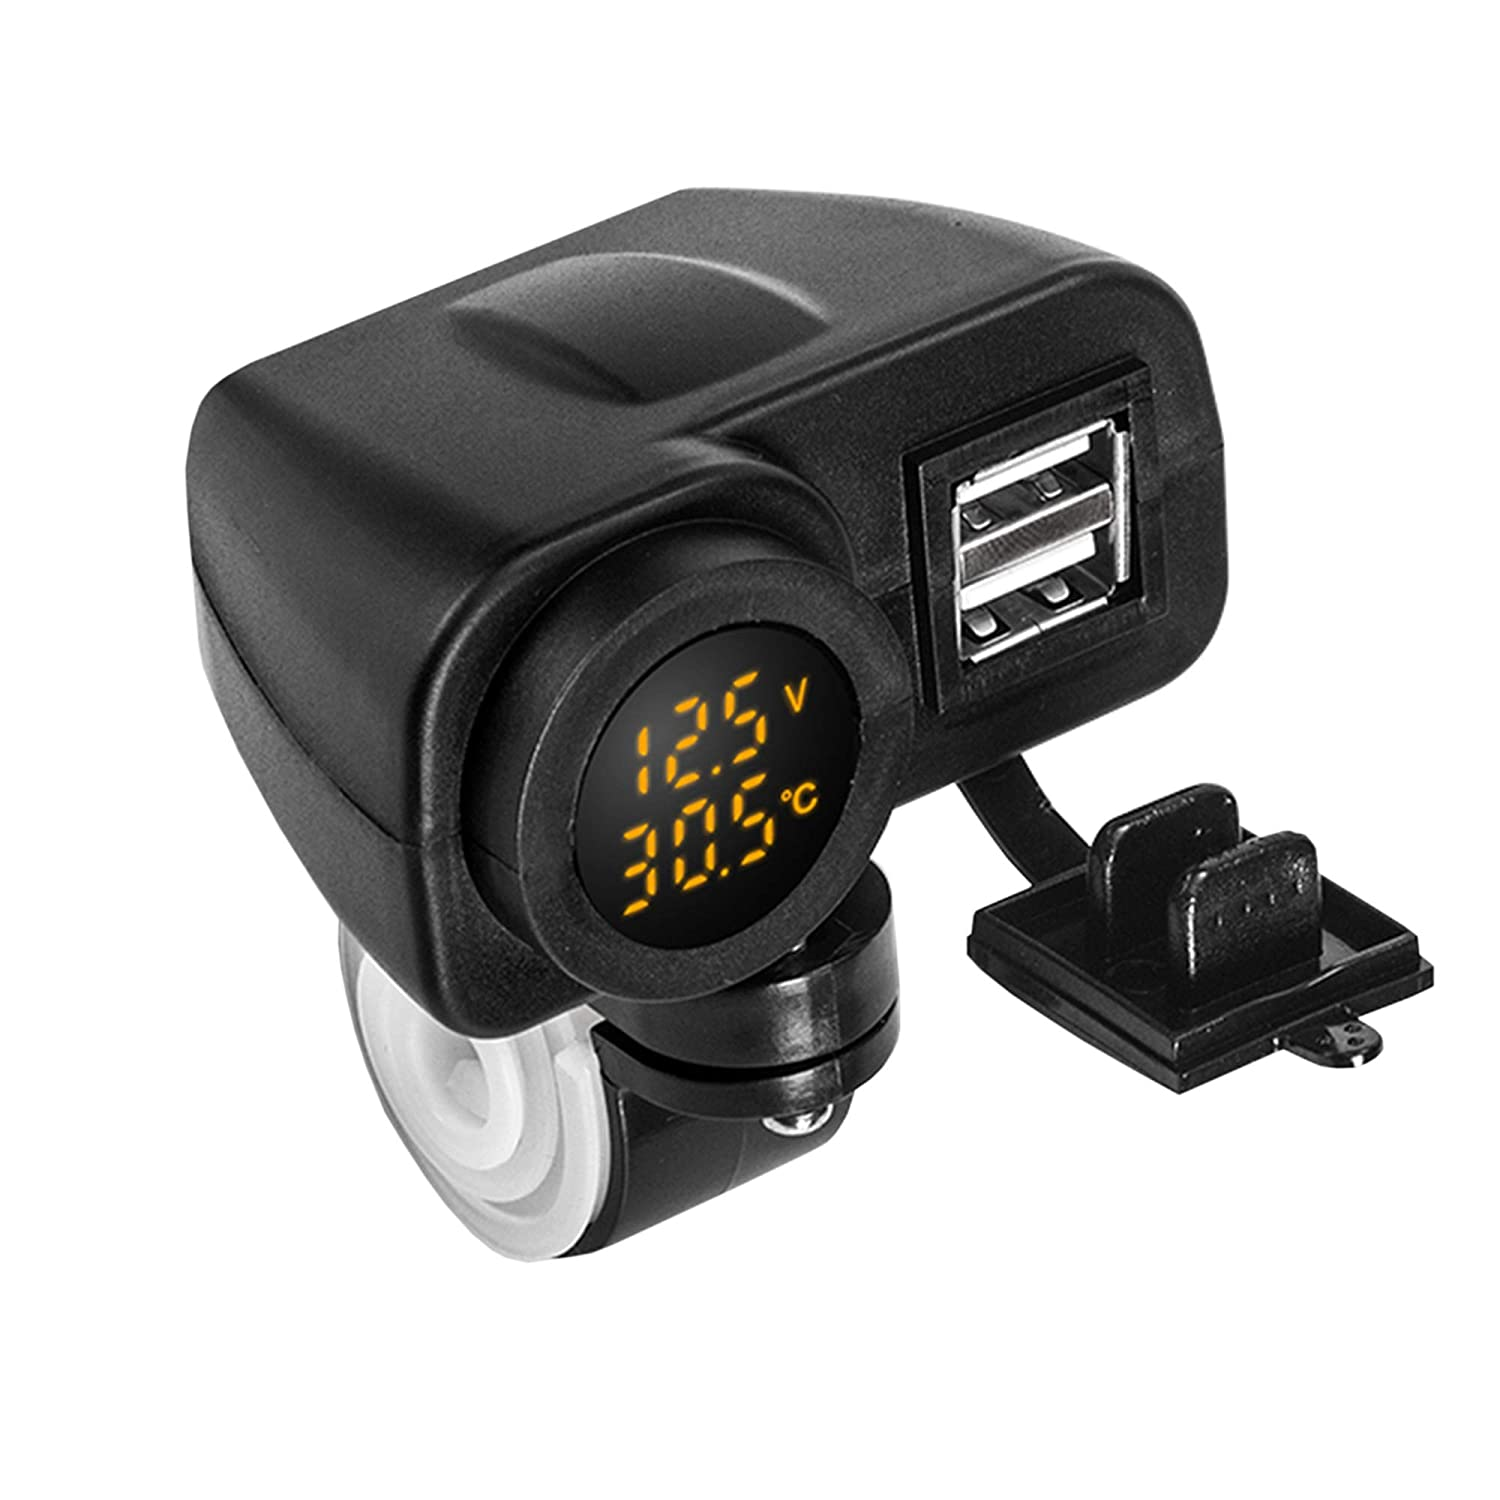 Motorcycle/ATV/Scooters DC 5V 4.2A Dual USB Charger with LED Voltmeter Thermometer for Phone iztor